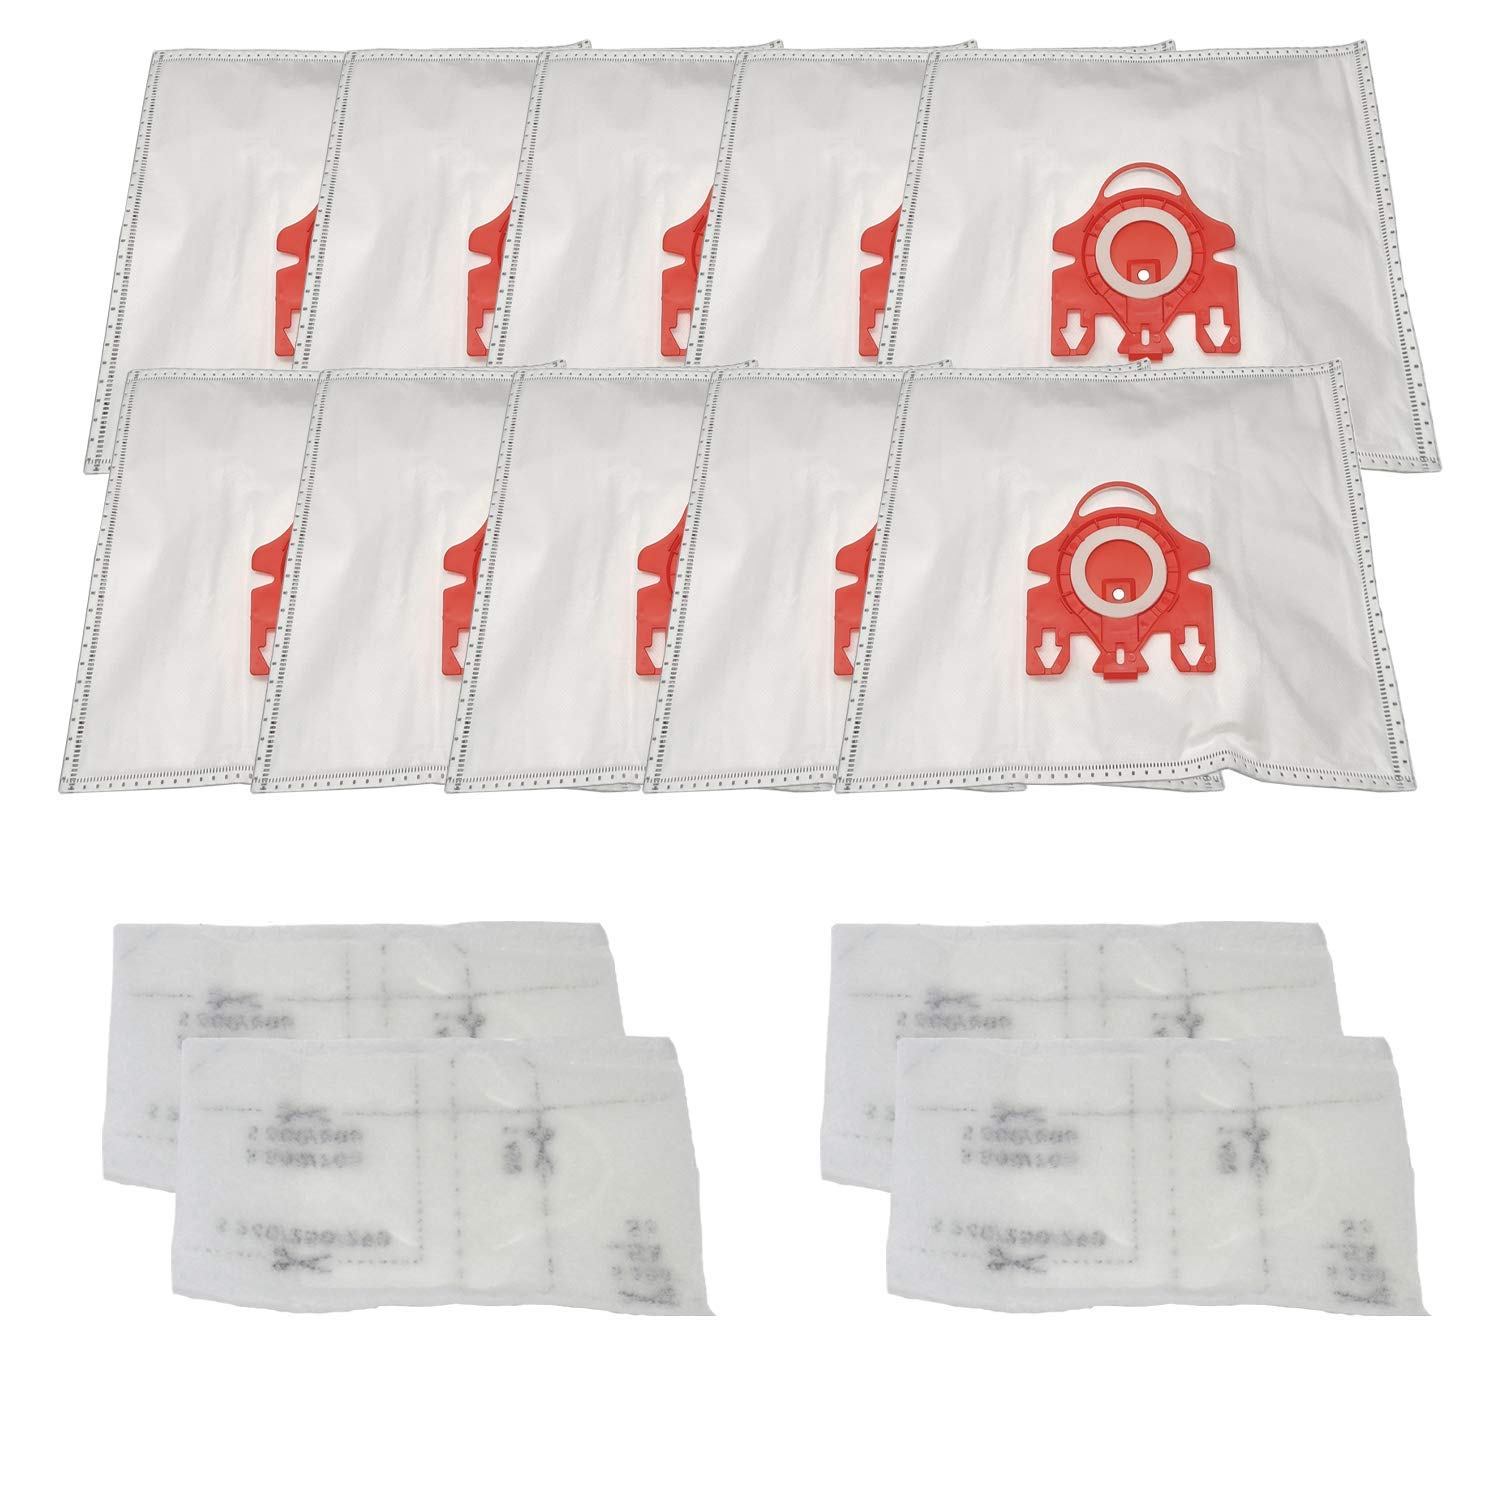 ZVac Miele FJM Vacuum Bags Replacement for Miele Hyclean Airclean 3D Miele Vacuum Cleaner Bags Replaces Parts: 7291640 Fits: S291 S300i-S399 S500-S578 S700-S758 S4000-S4999-10 Pack Bags & 4 Filters by ZVac